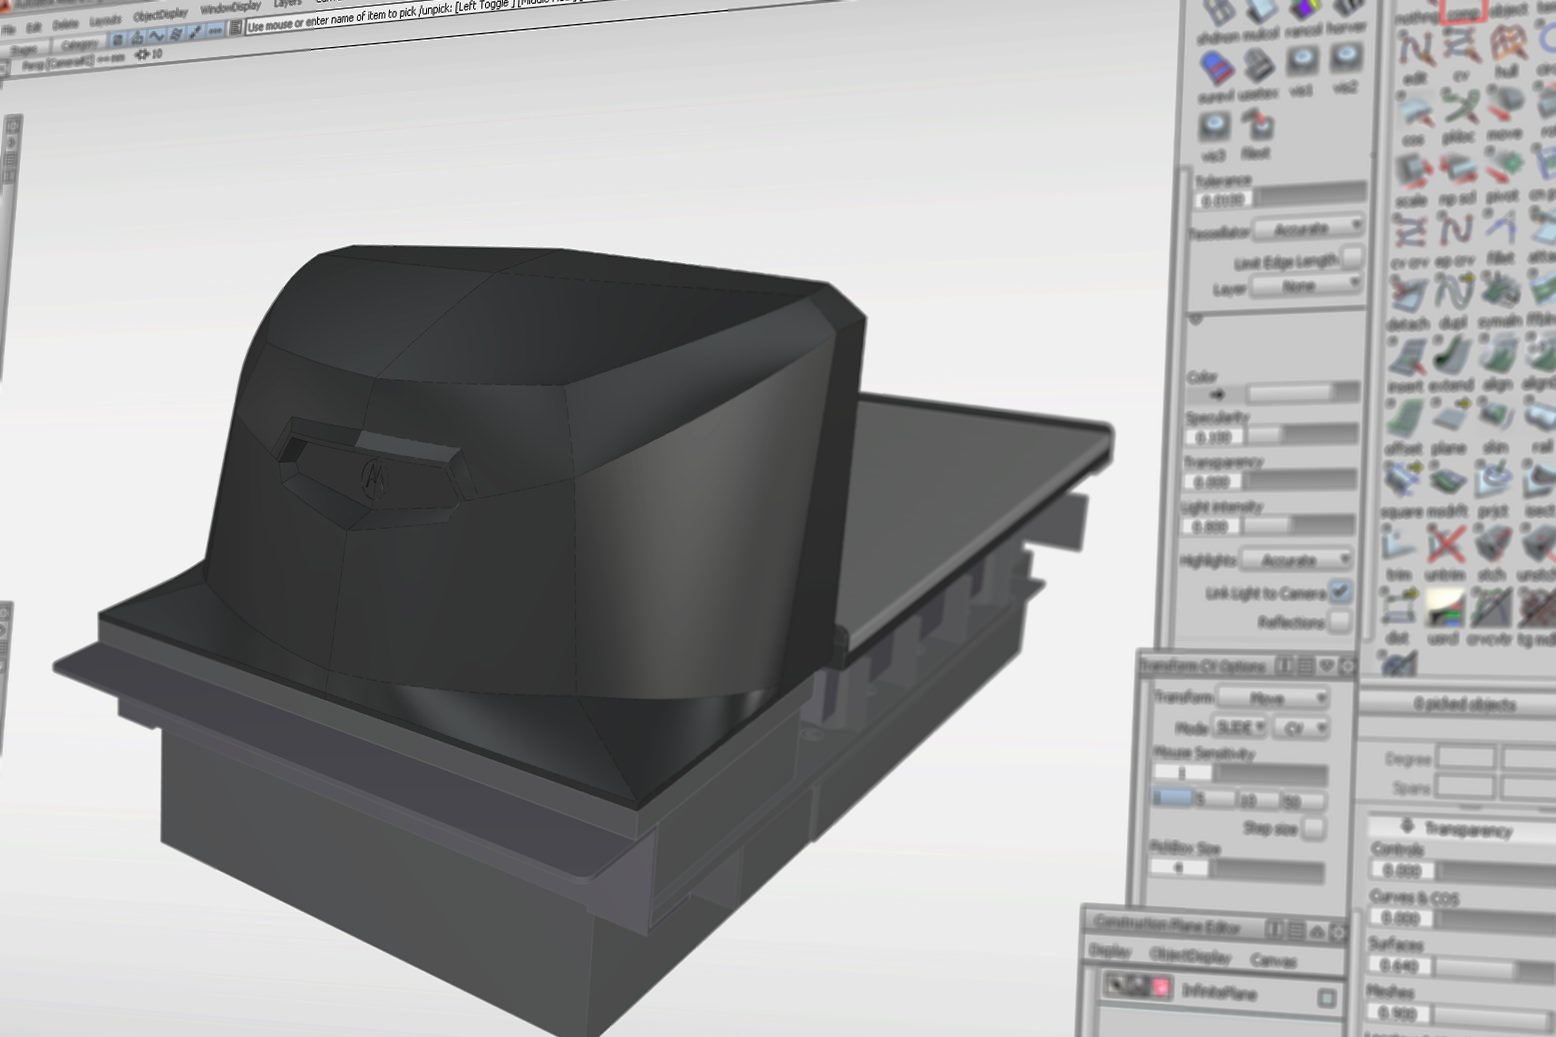 Rear view of the MP6000 housing in the CAD file